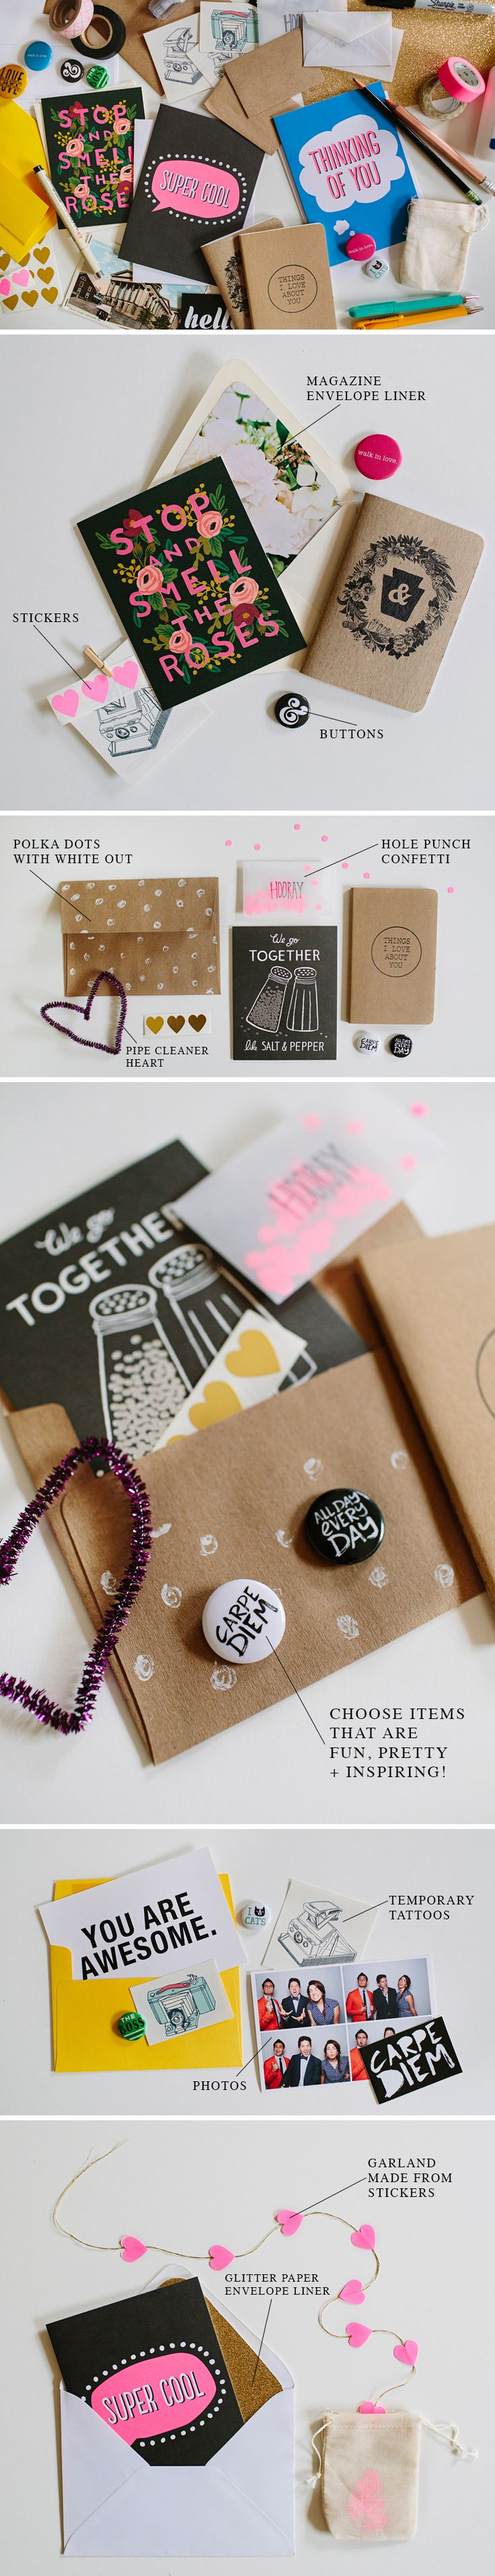 Send some awesome snail mail | walk in love.